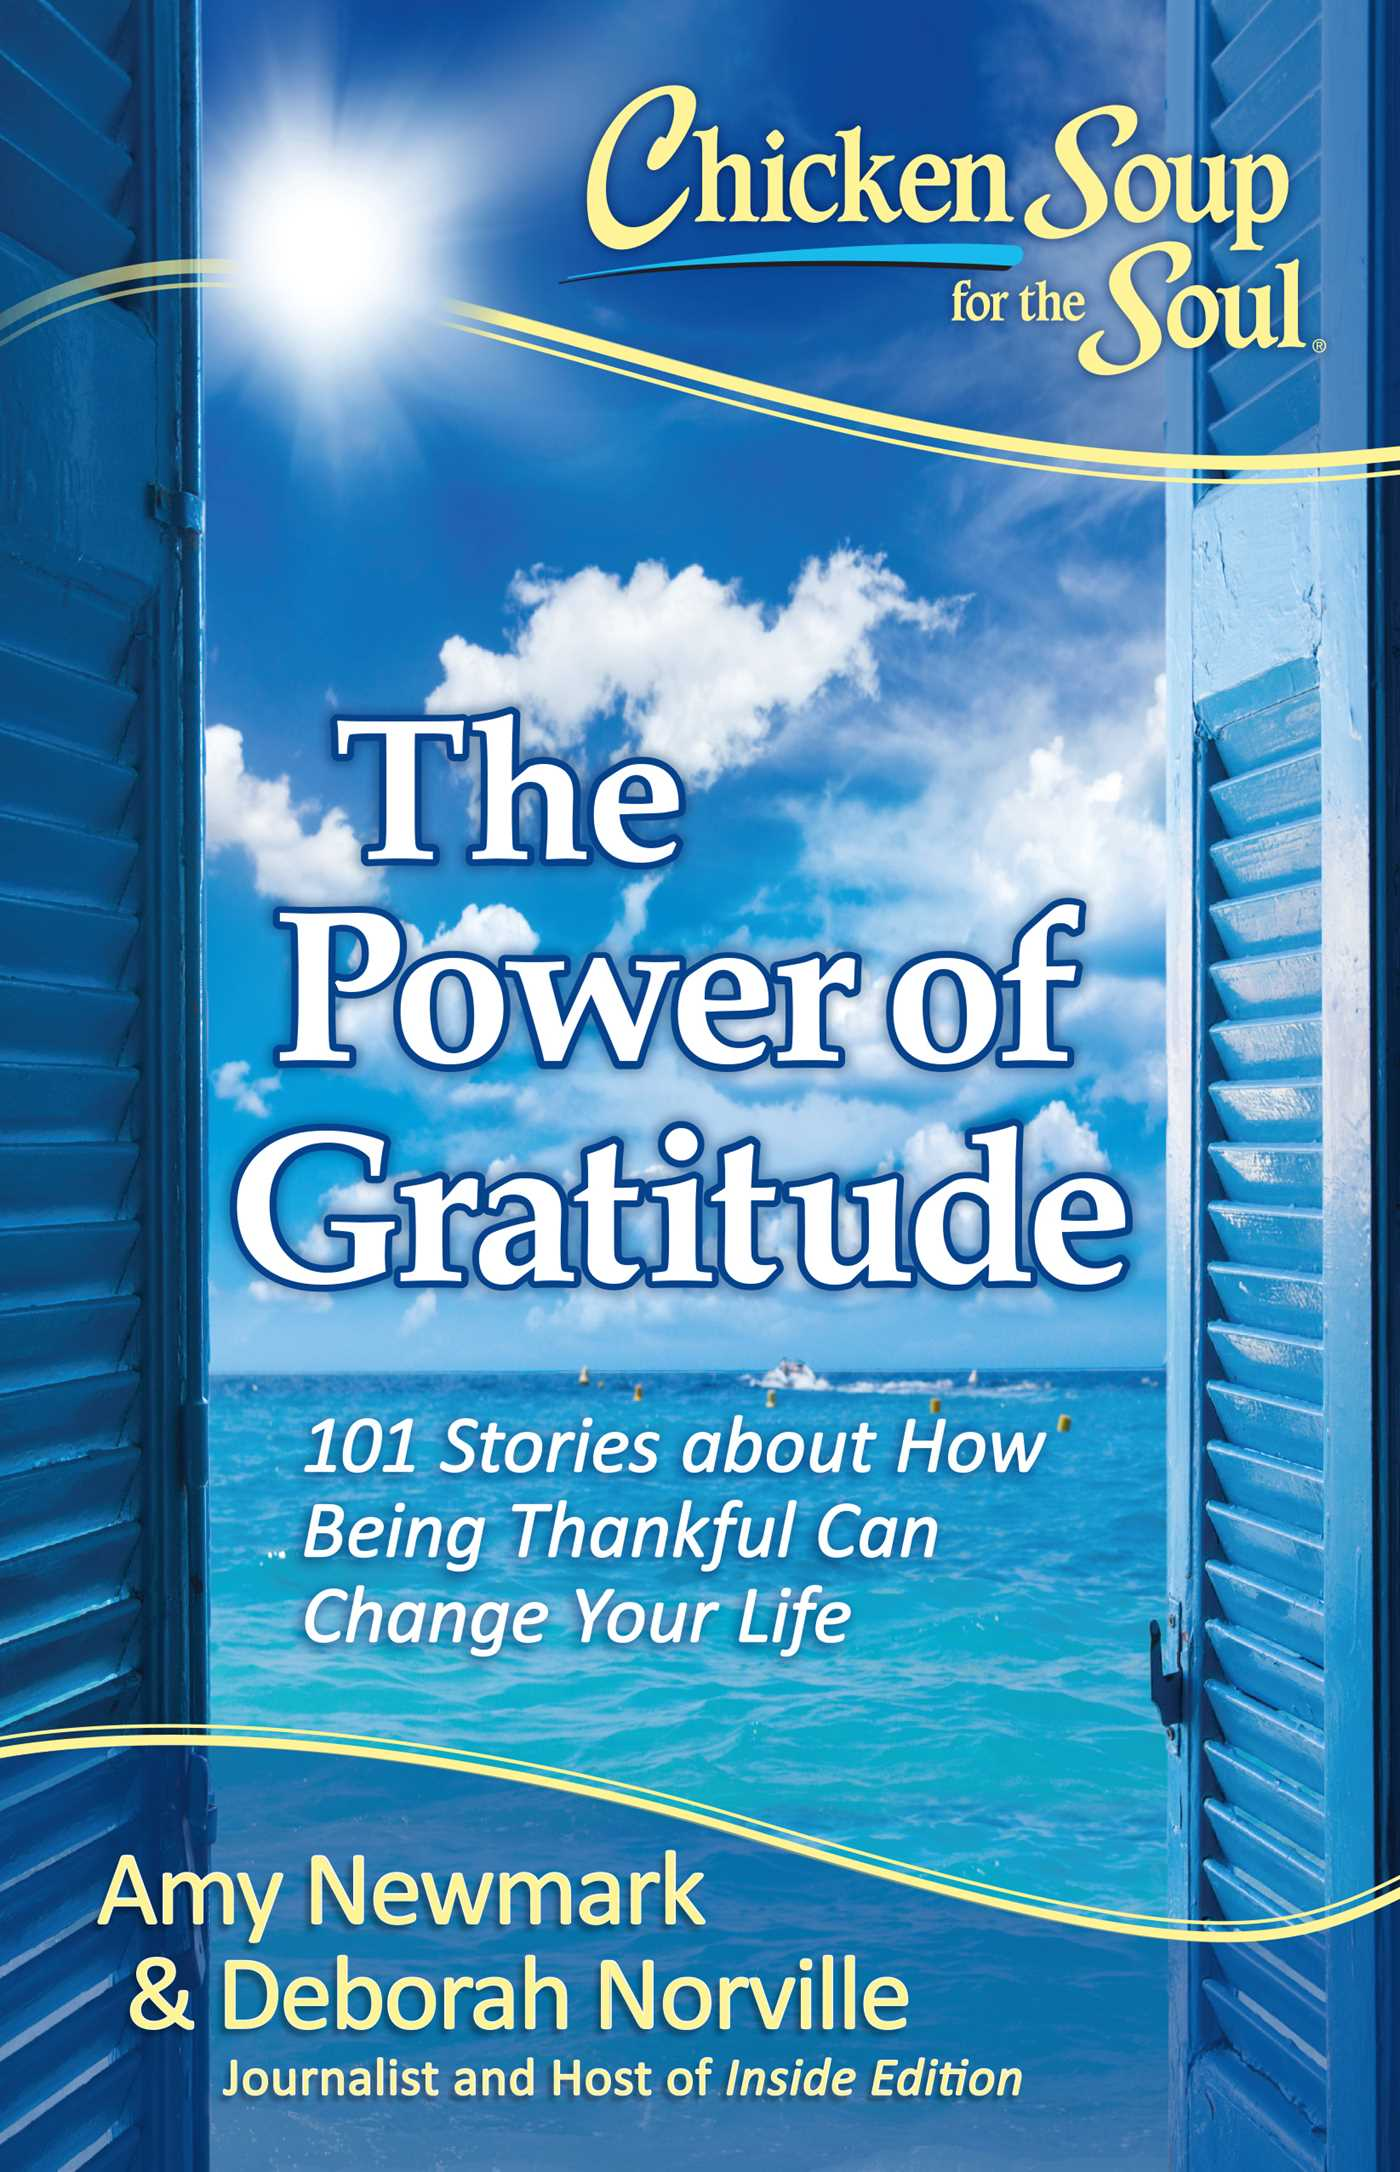 Chicken-soup-for-the-soul-the-power-of-gratitude-9781611599589_hr